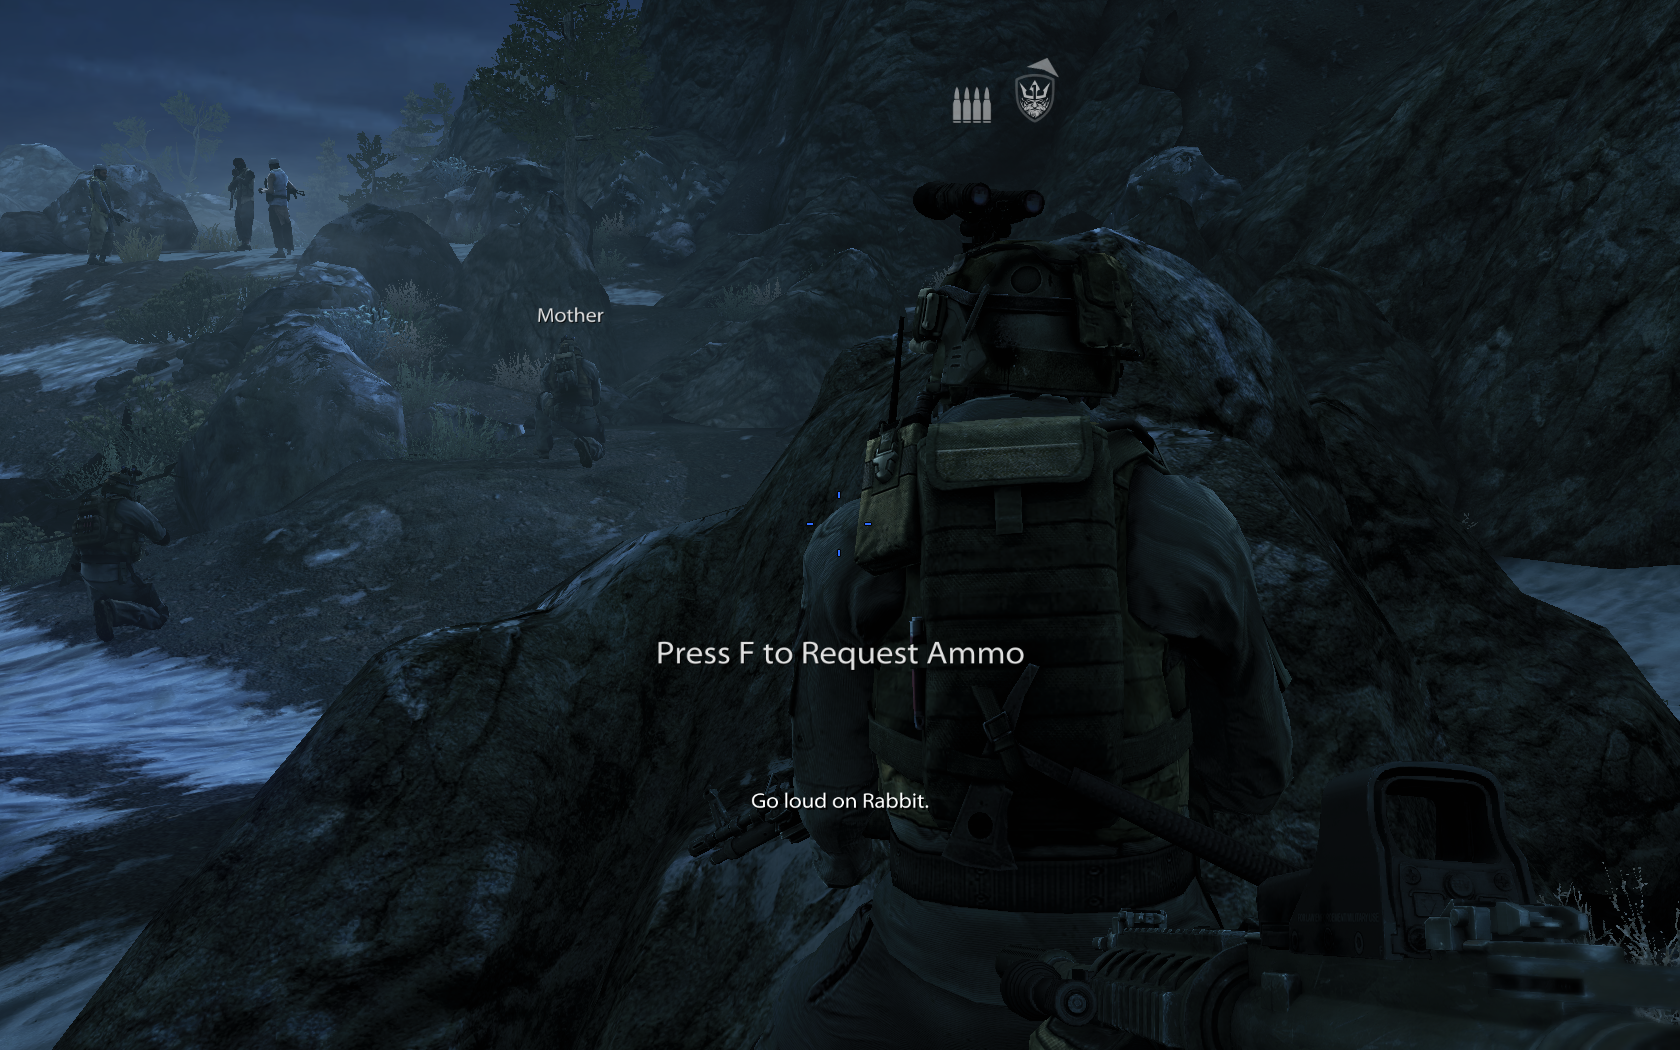 Medal of Honor Windows If you are low on ammunition, you can ask your teammates for more